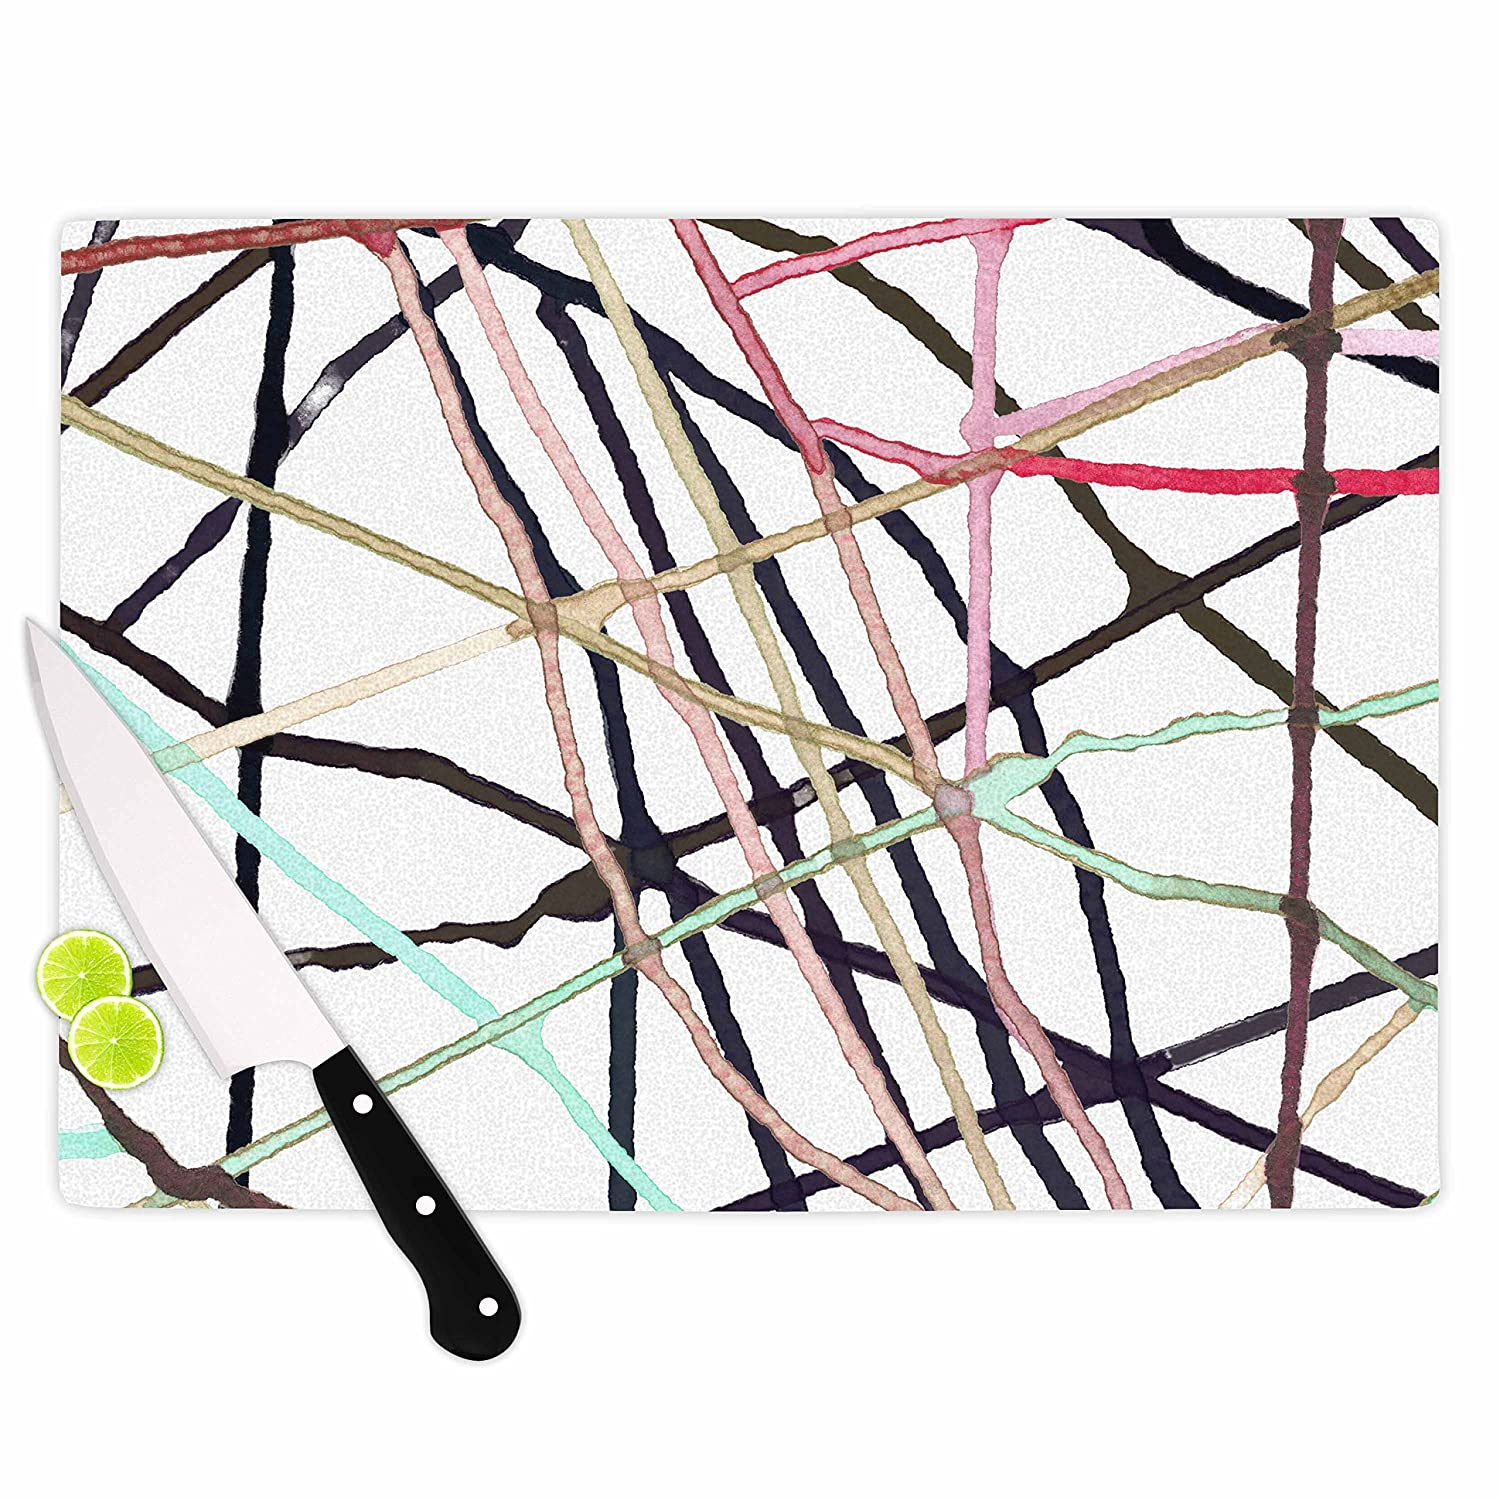 Multicolor KESS InHouse PatternmuseLove Tangle Brown Green Watercolor Cutting Board 11.5 x 15.75